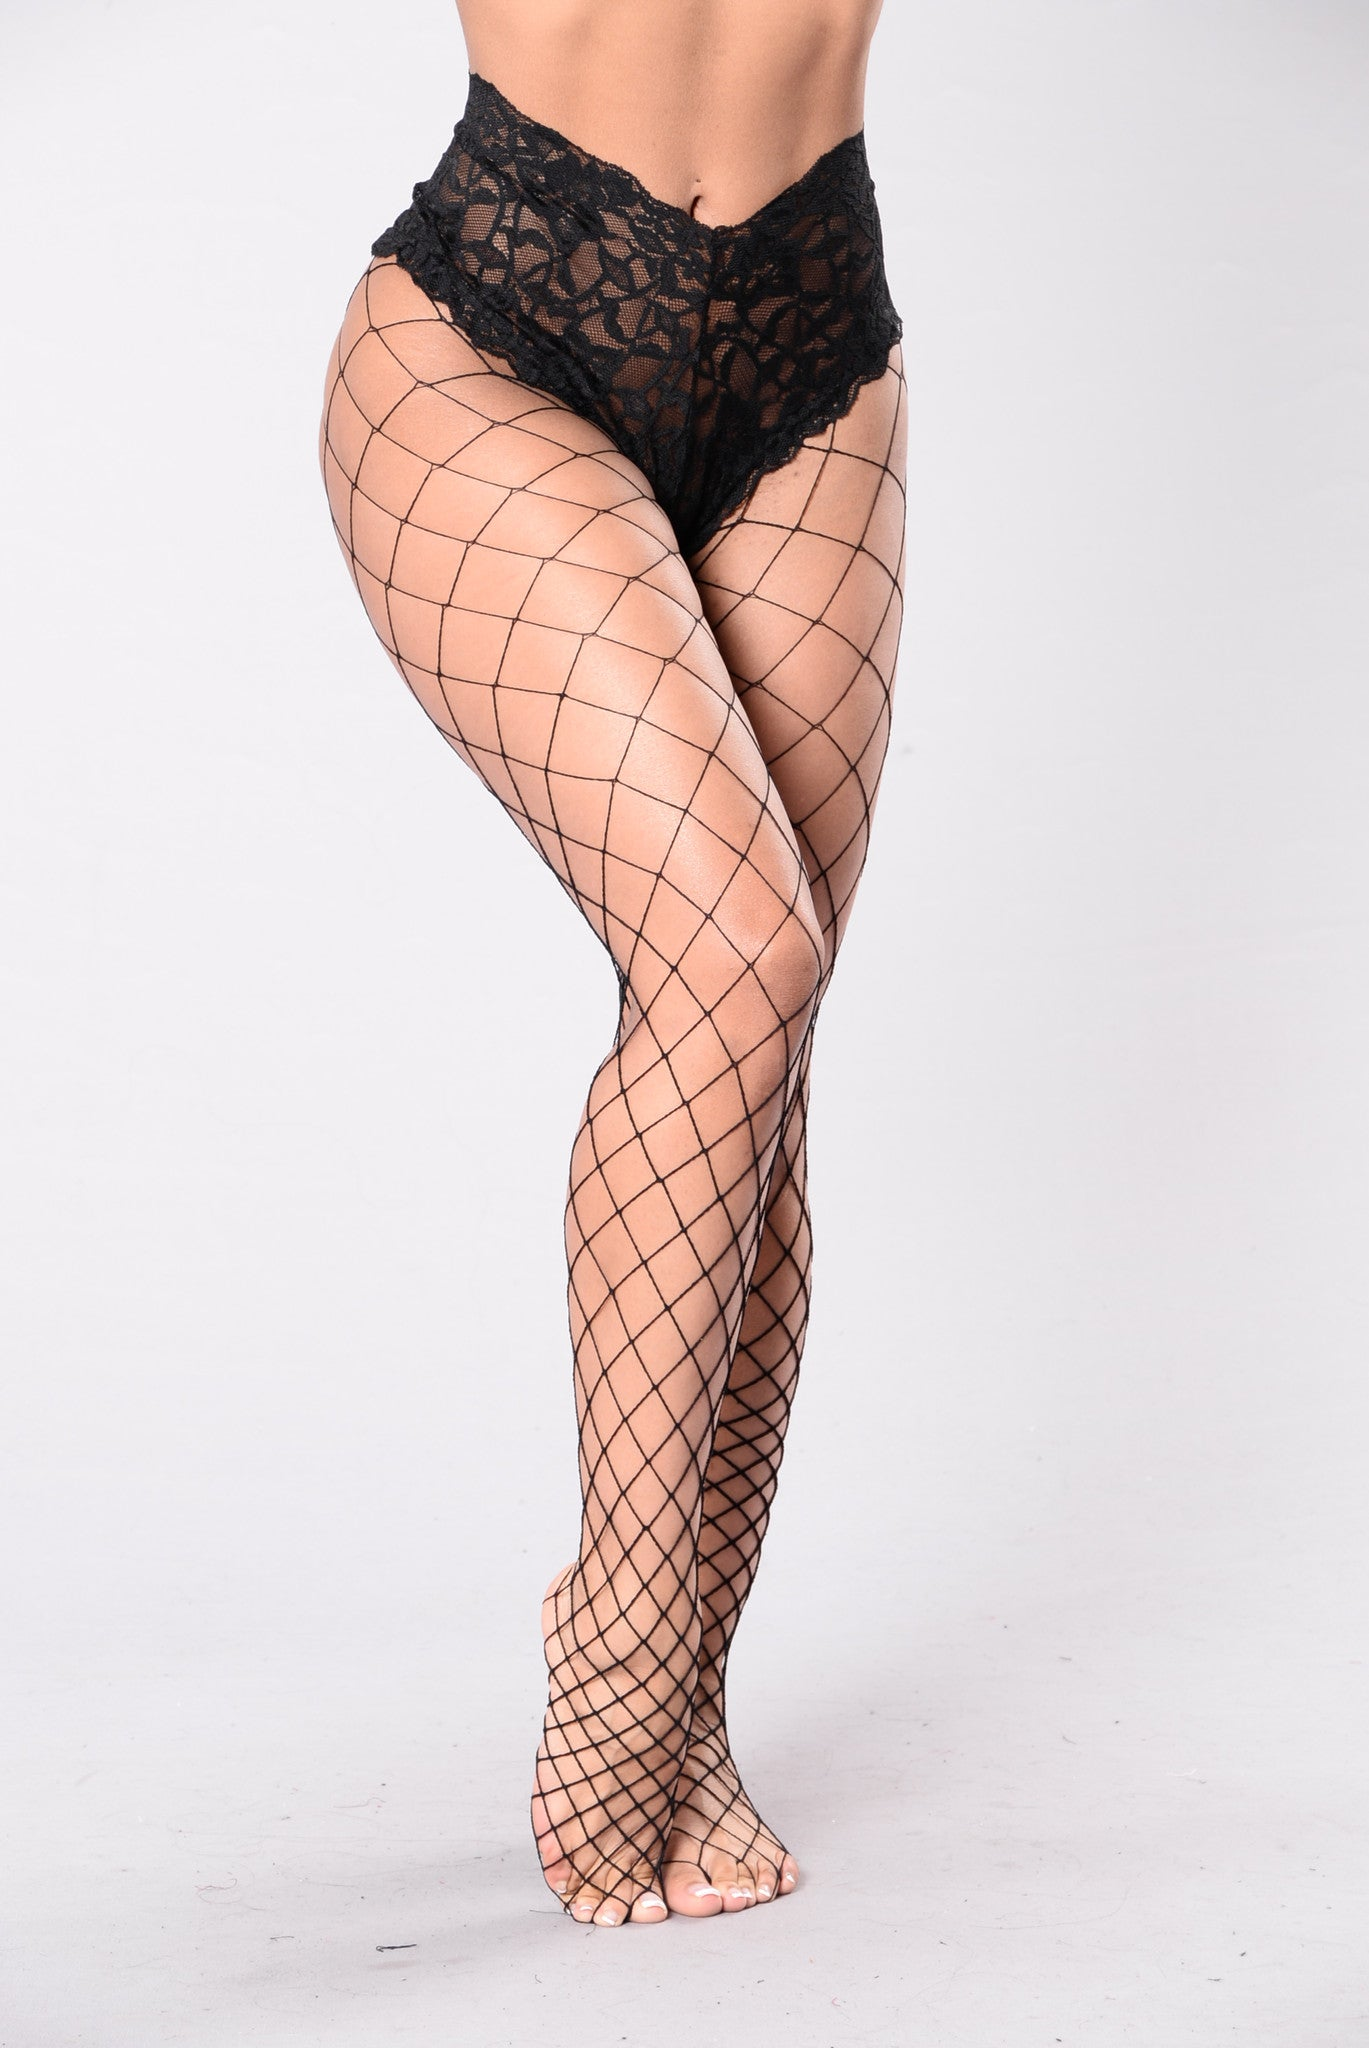 bc778158b05 Fishnet Pantyhose - Black